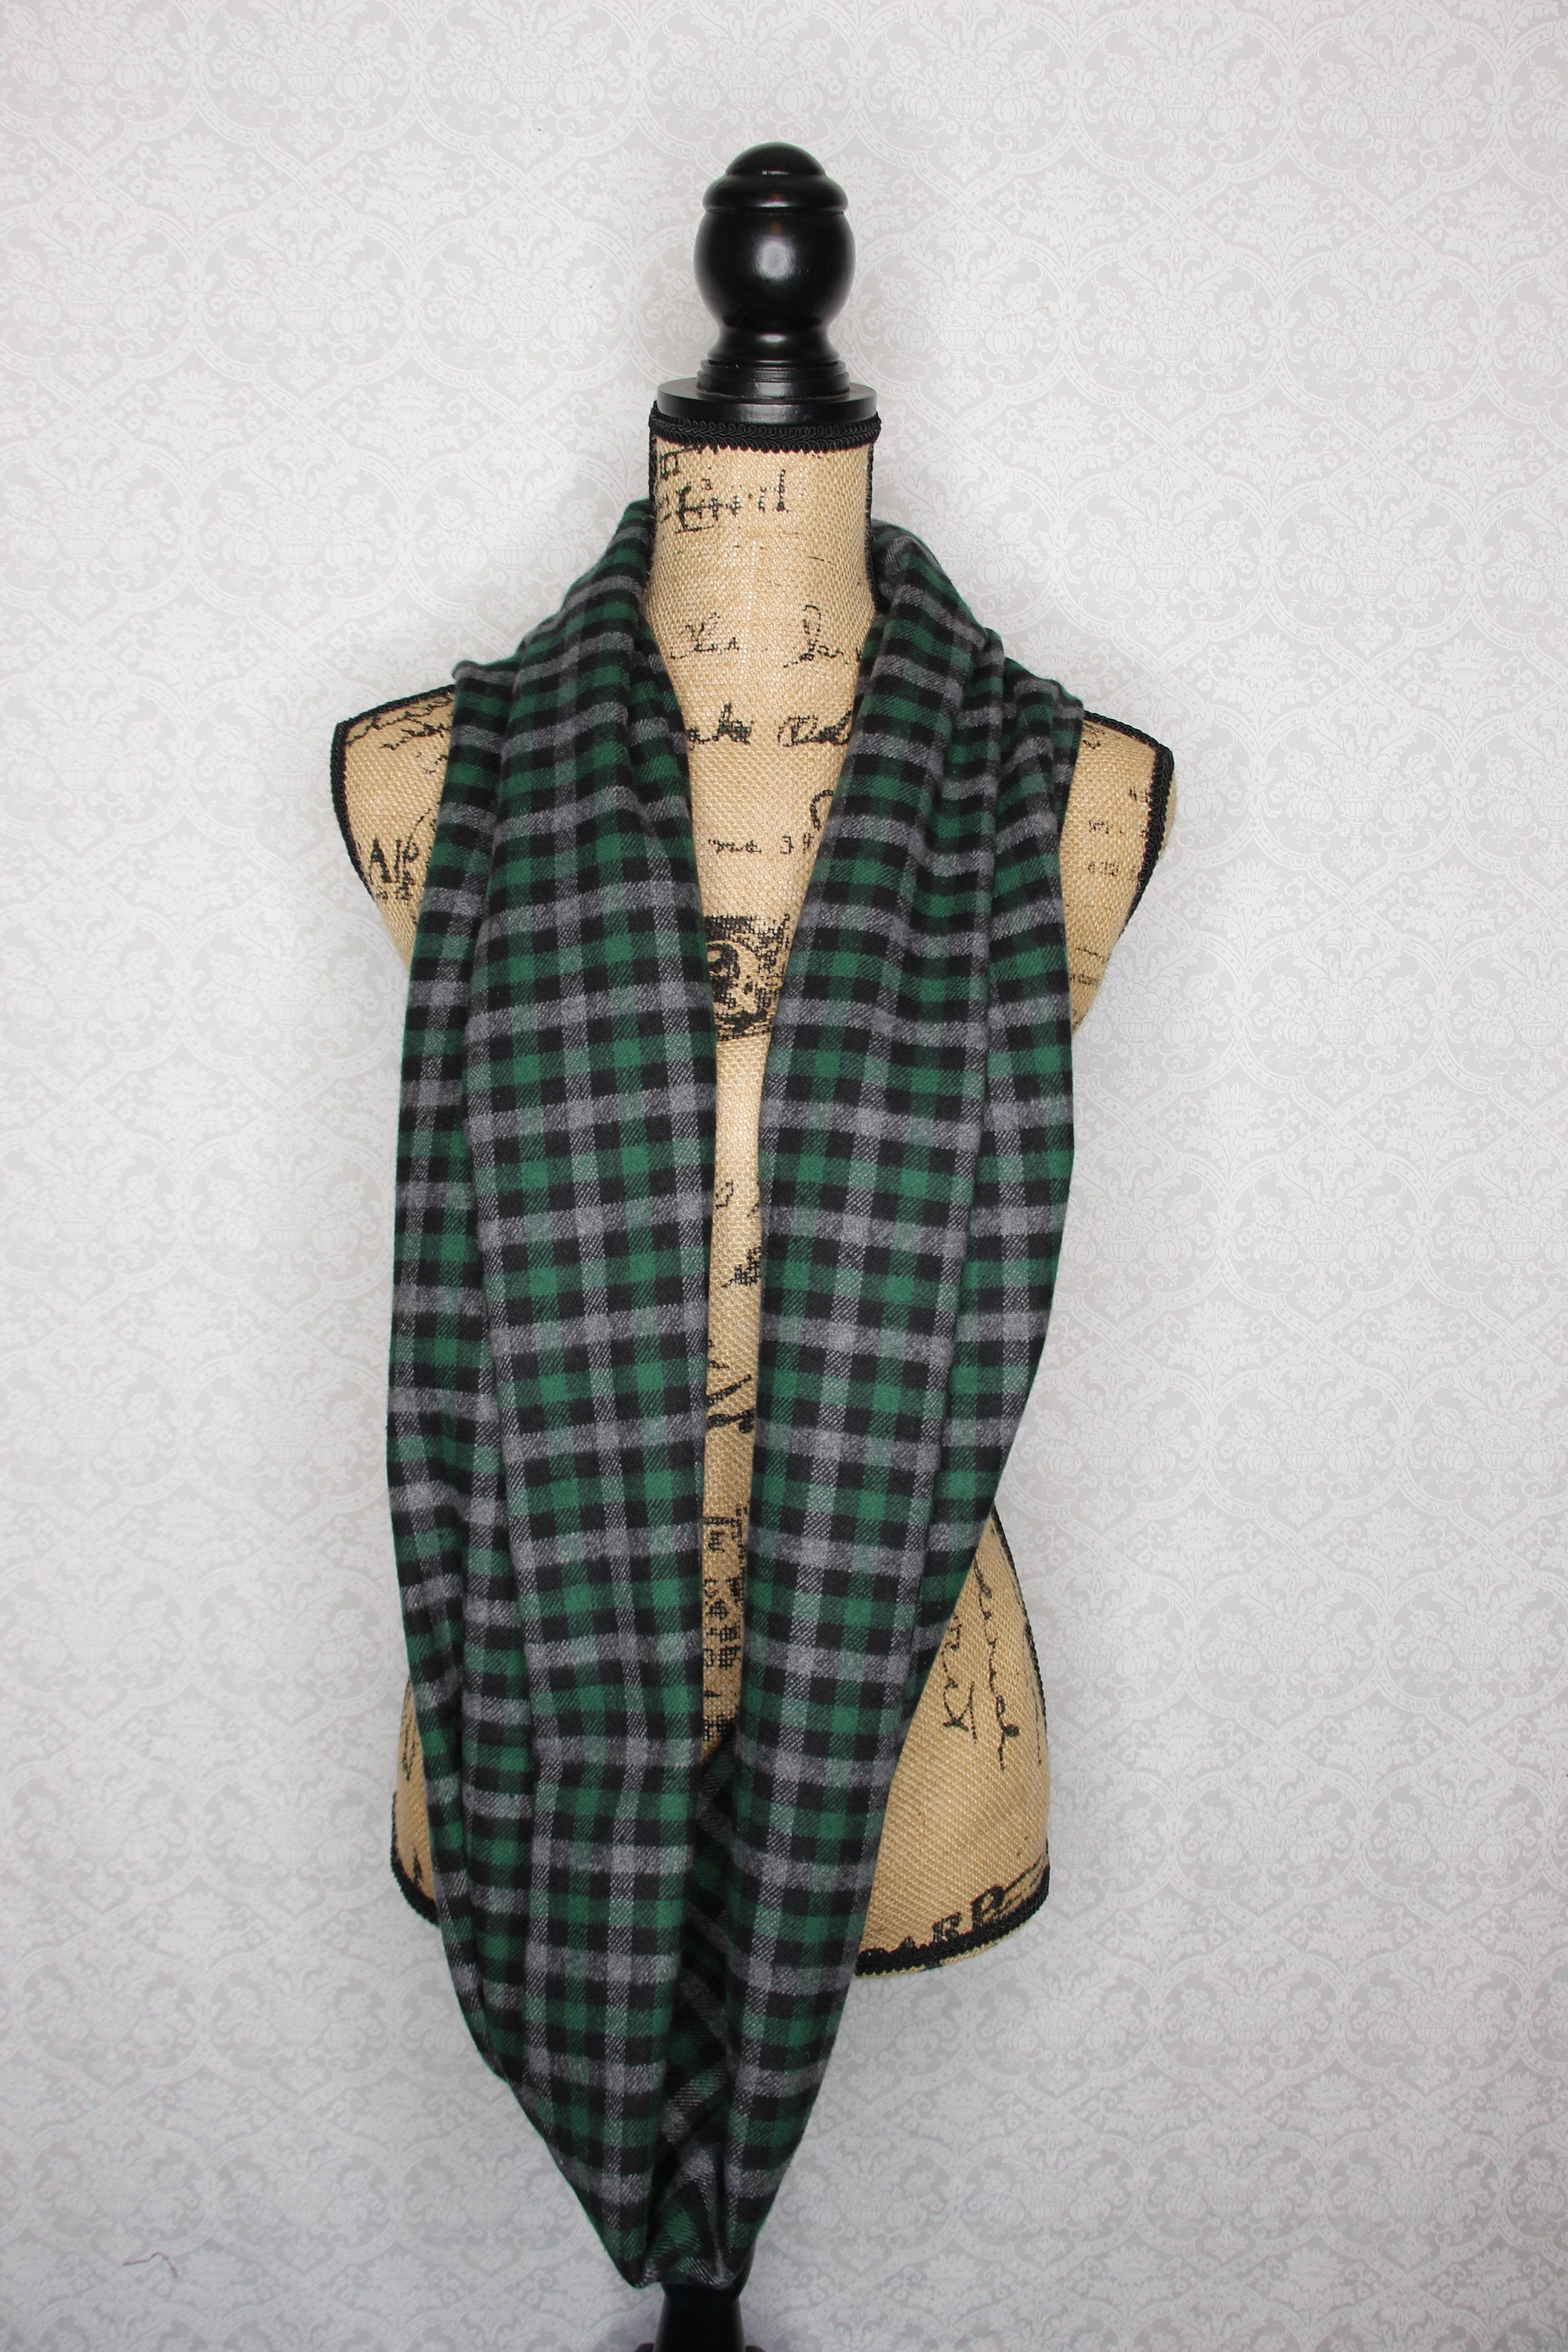 Forest Hunter Green, Gray, and Black Small Check Plaid Flannel Infinity Scarf Thick 100% Cotton Tartan